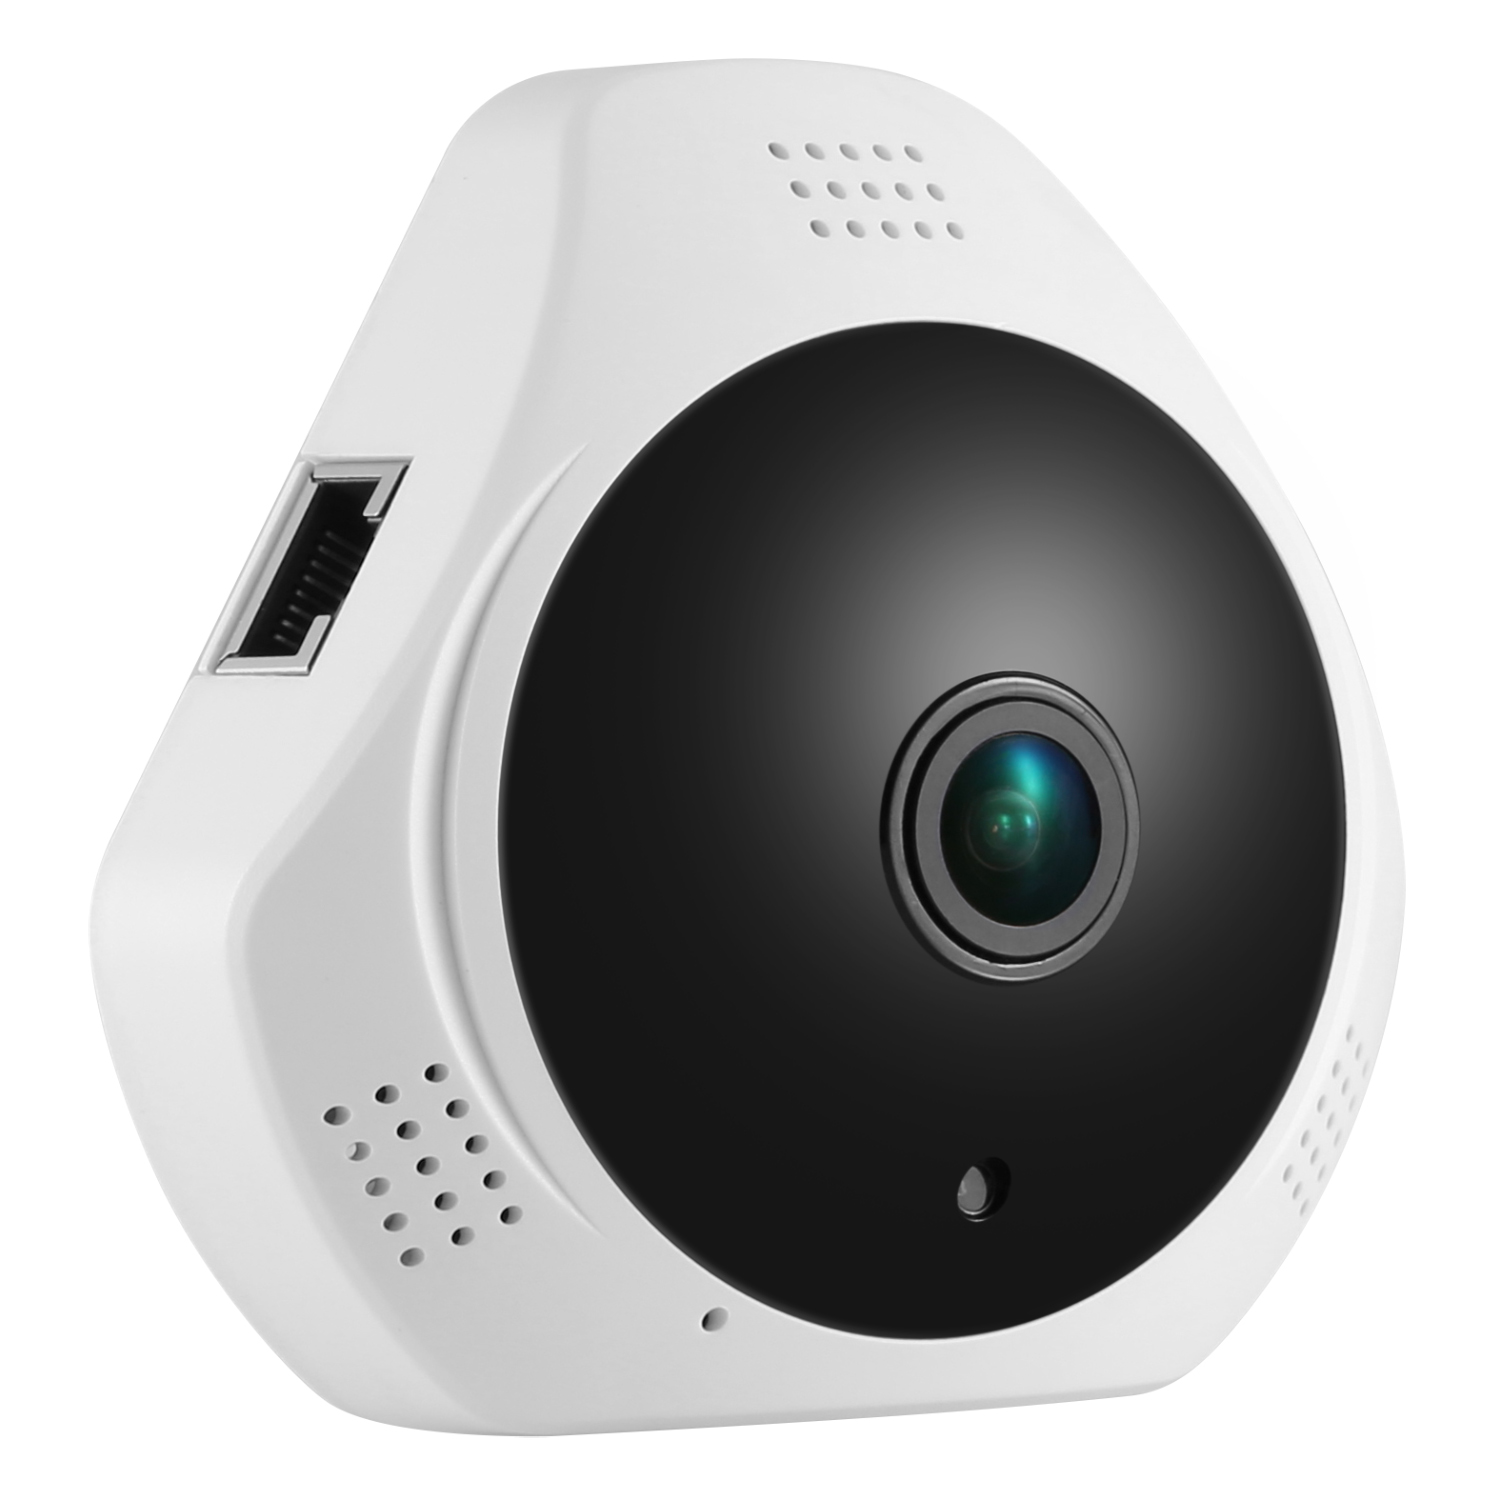 sannce-360-graus-fisheye-camera-panoramica-mini-960-p-rede-wi-fi-sem-fio-camera-de-seguranca-ip-wifi-13mp-video-microfone-embutido